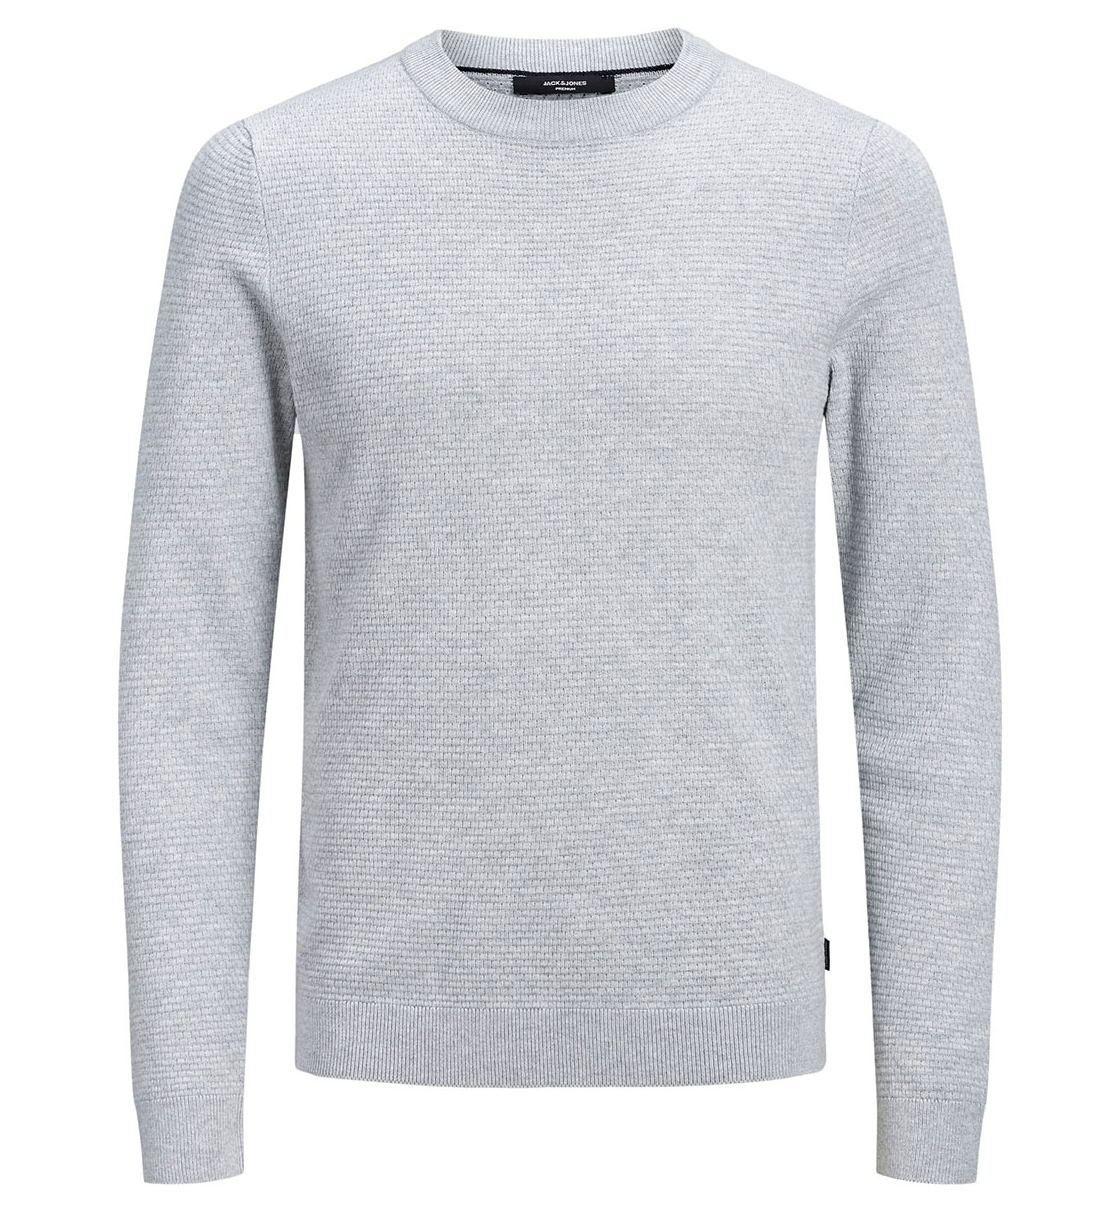 Jack & Jones Fw19 Jprfast Structure Knit Crew Neck